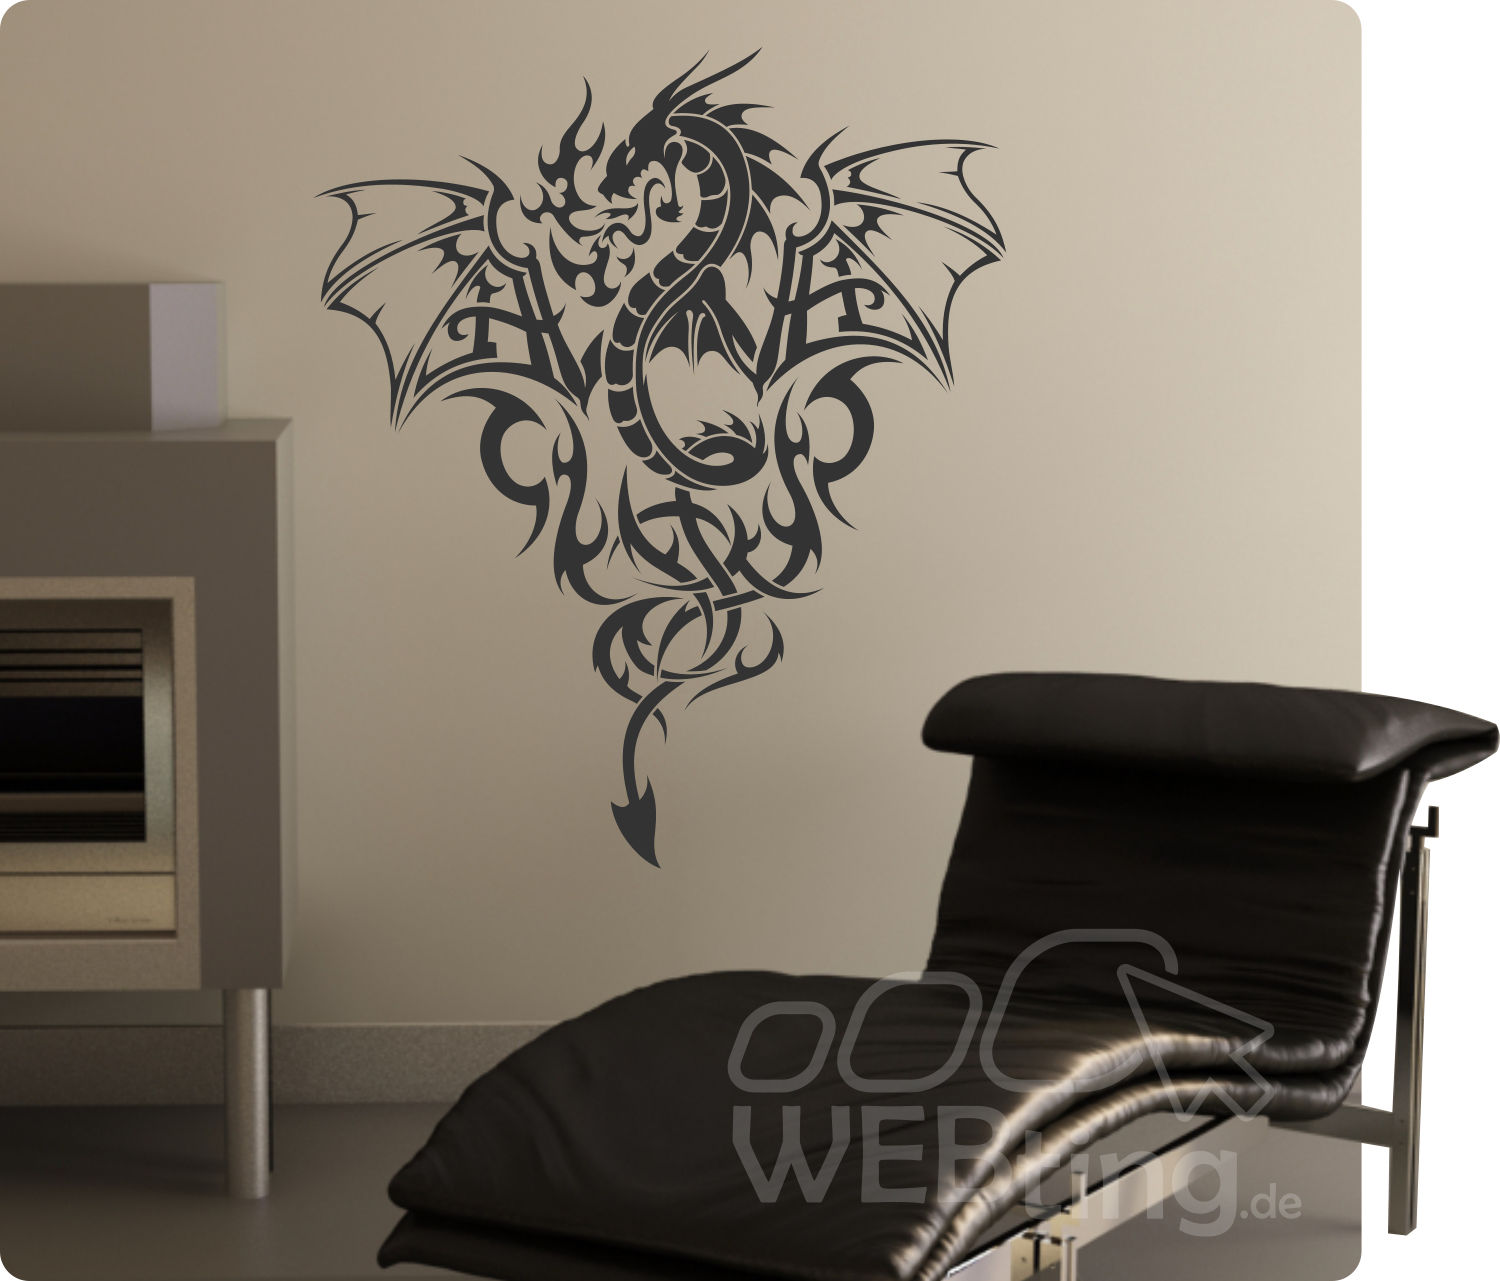 dragon drache wandtattoo wandfolie wandaufkleber aufkleber. Black Bedroom Furniture Sets. Home Design Ideas